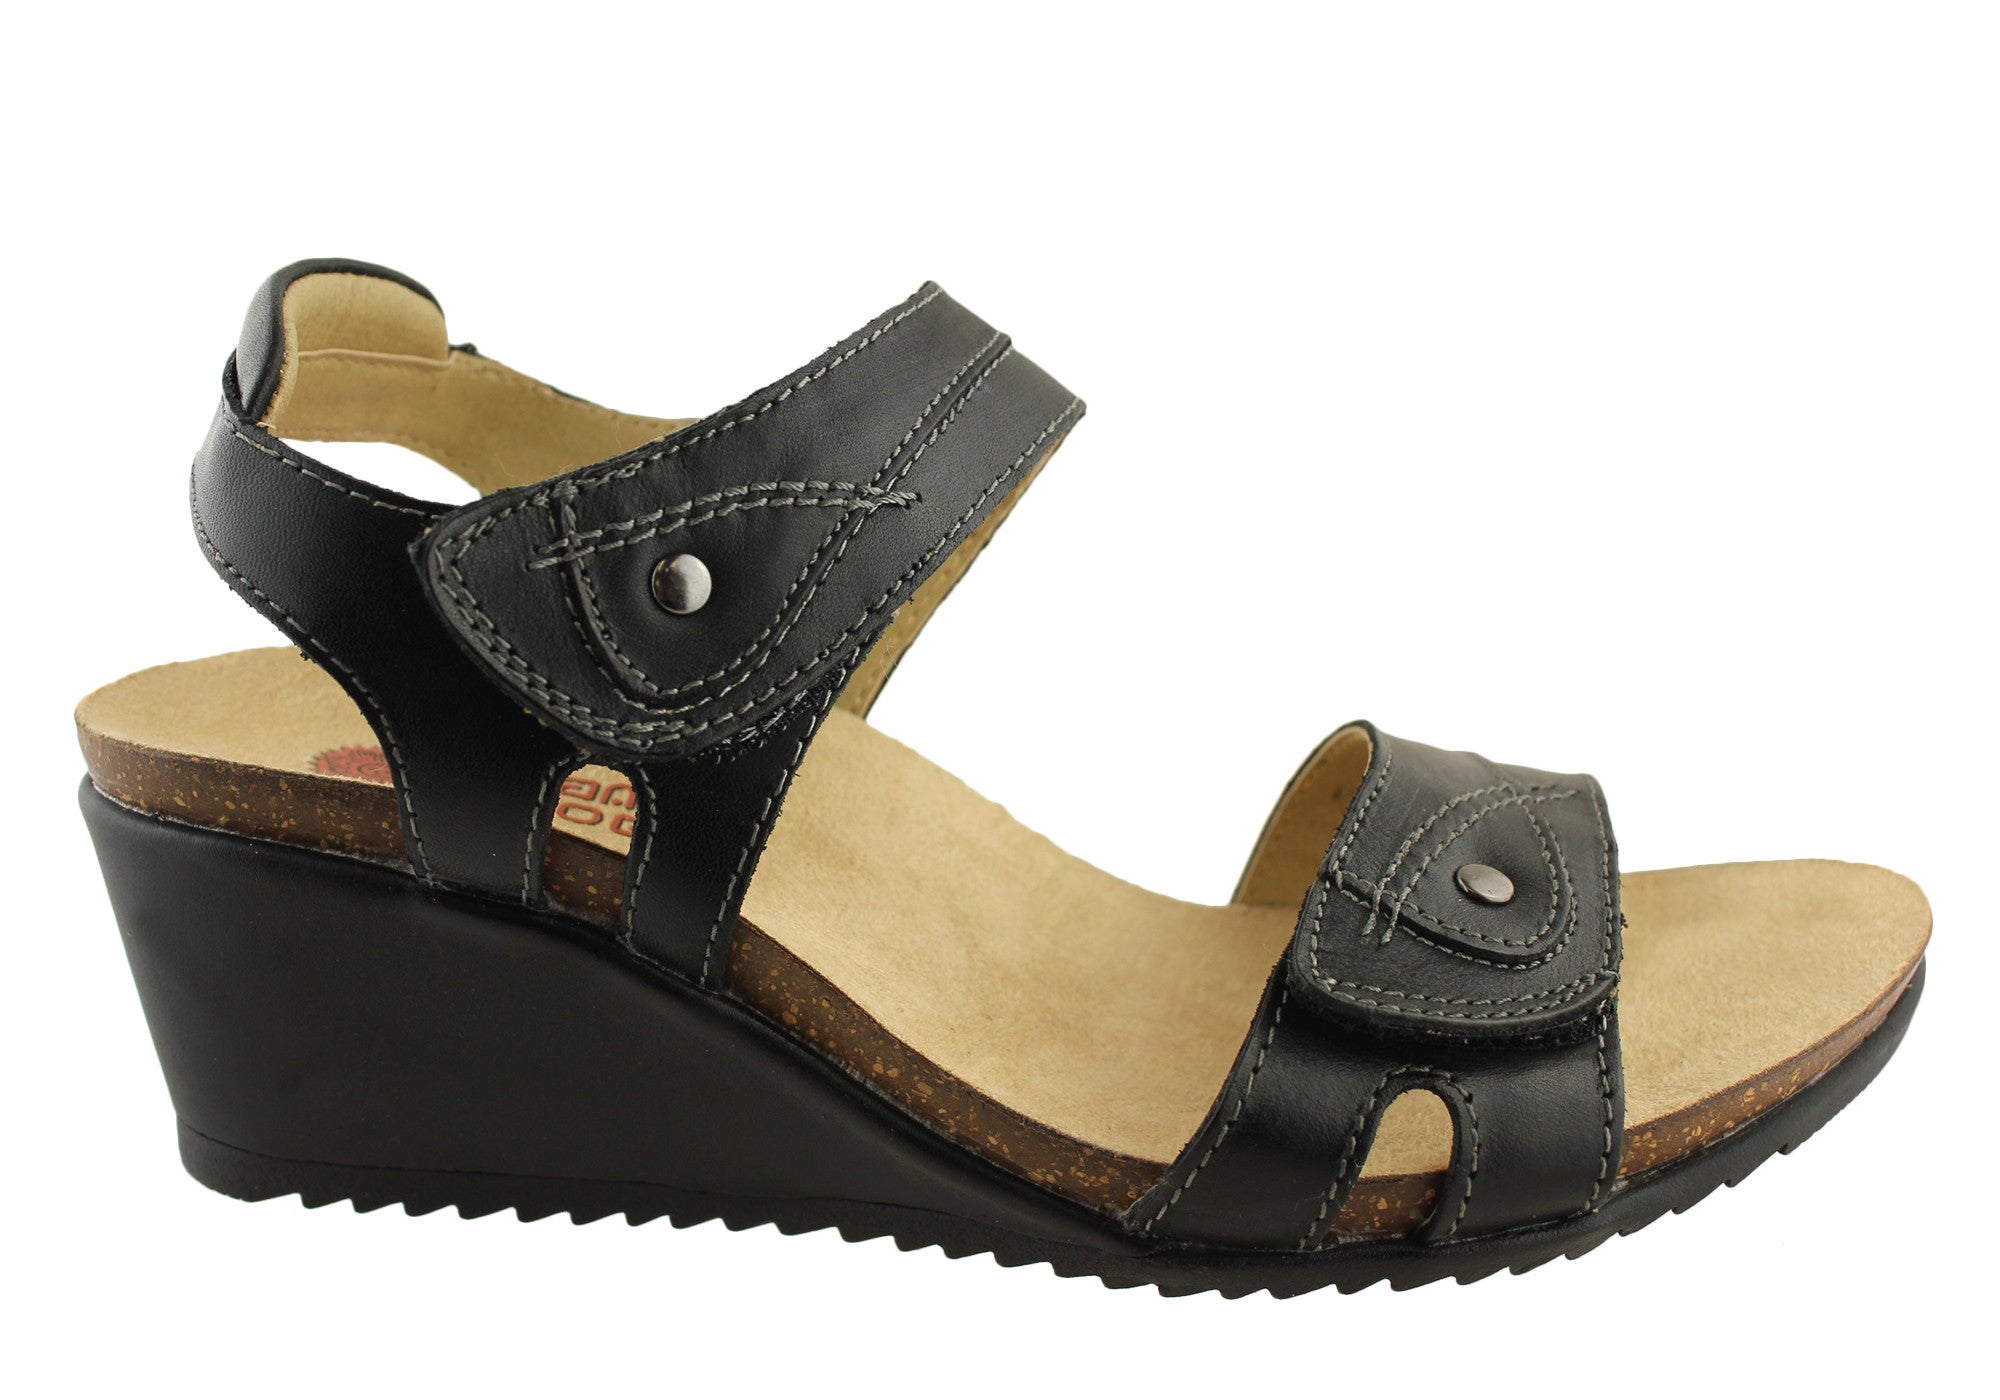 Comfort One Shoes Womens Sandals